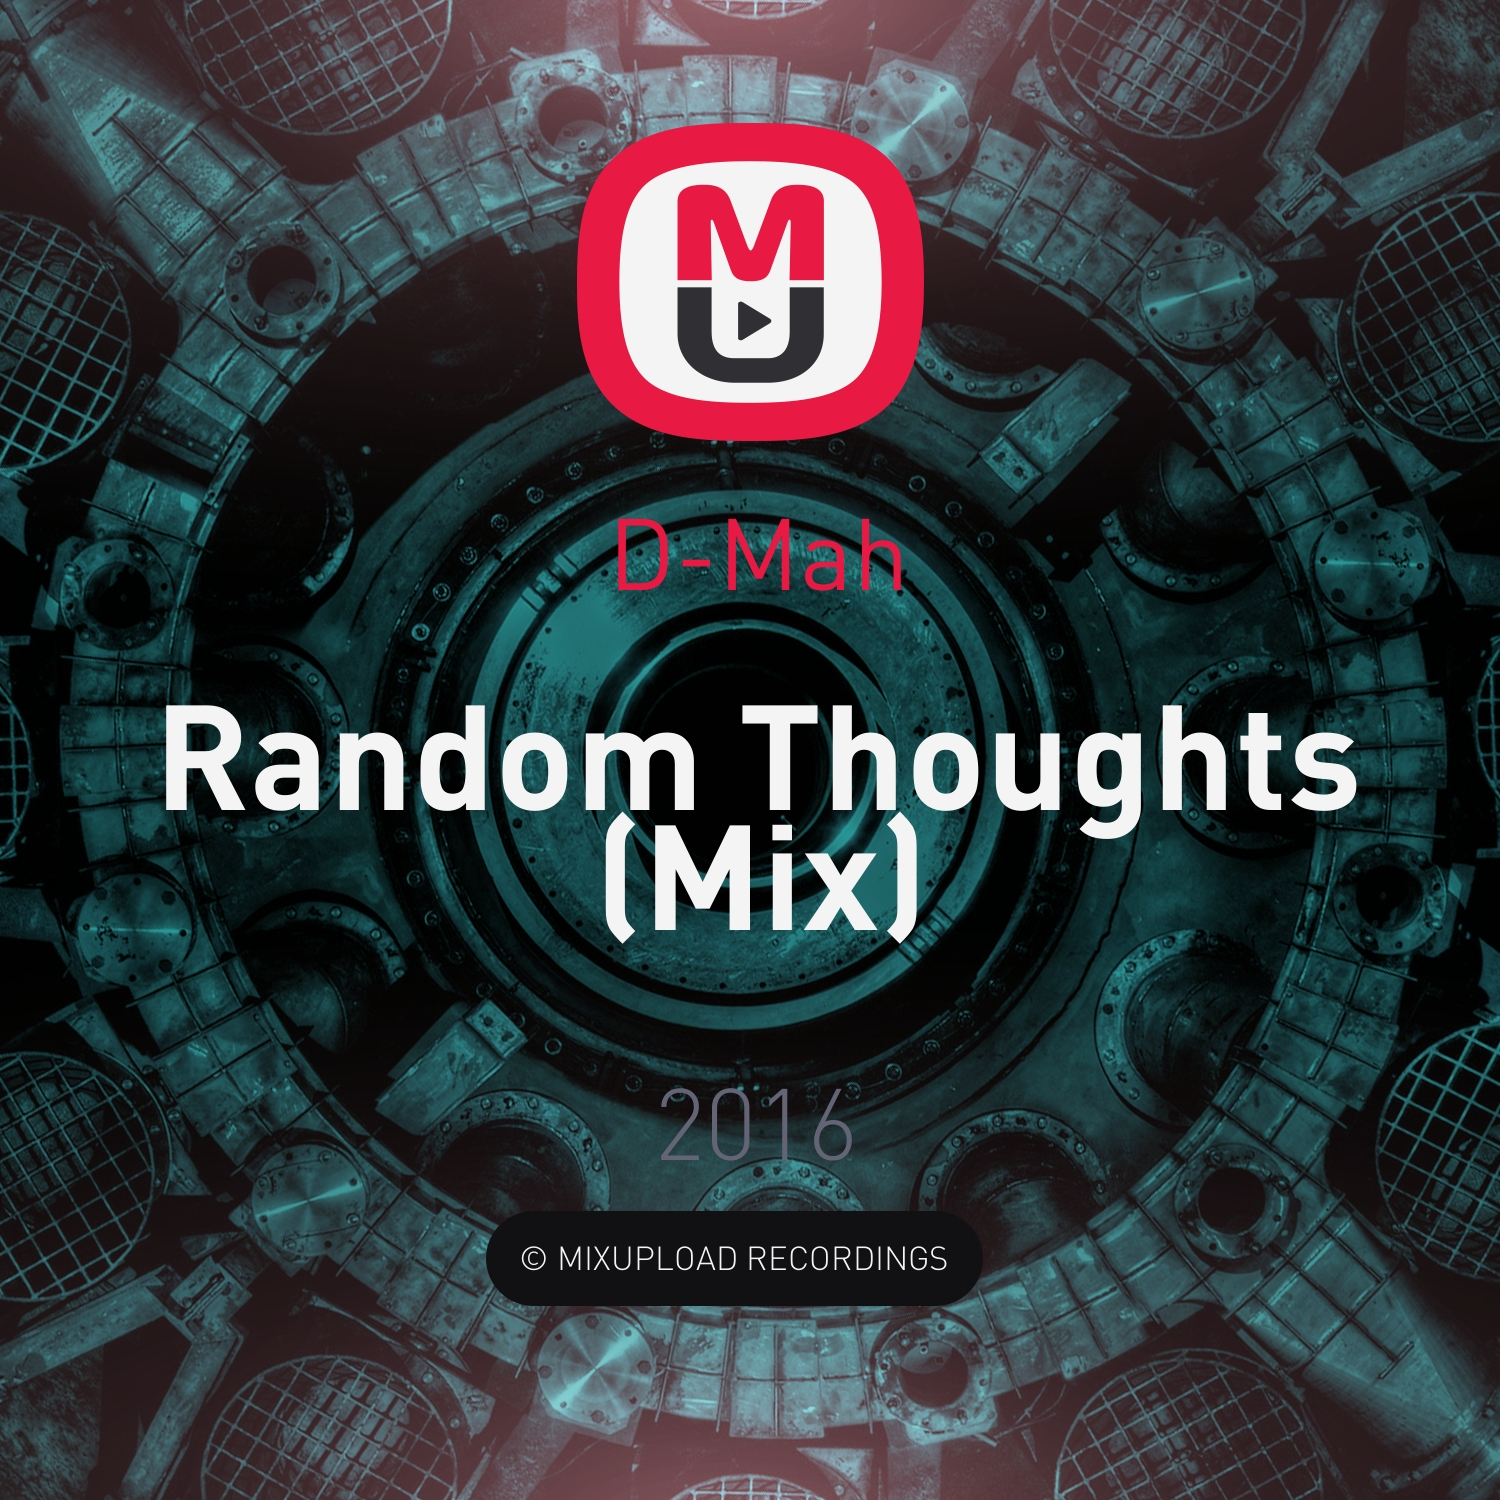 D-Mah - Random Thoughts (Mix)